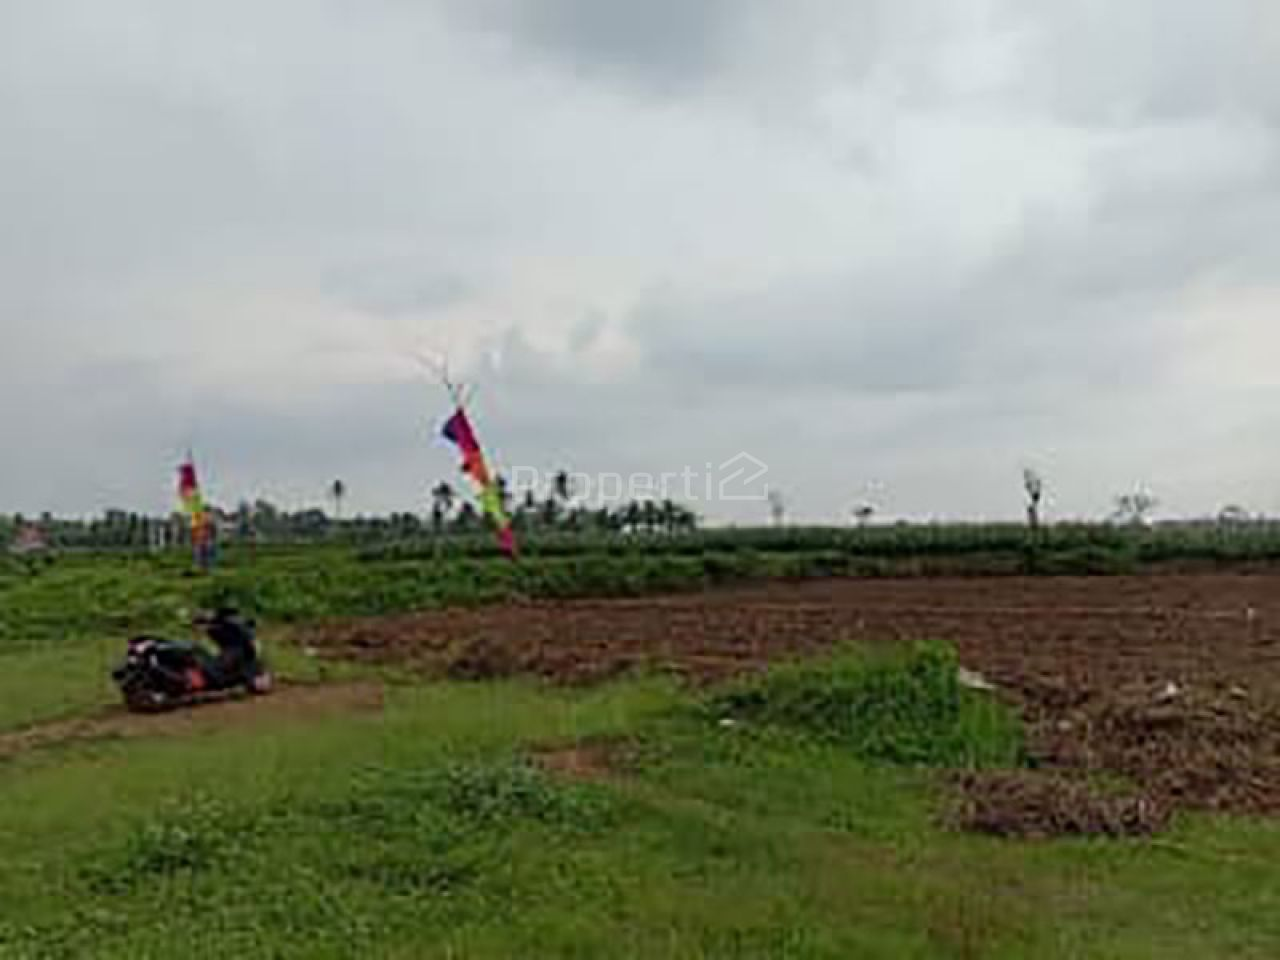 Strategic Plot Land in Saptorenggo, Pakis, Jawa Timur